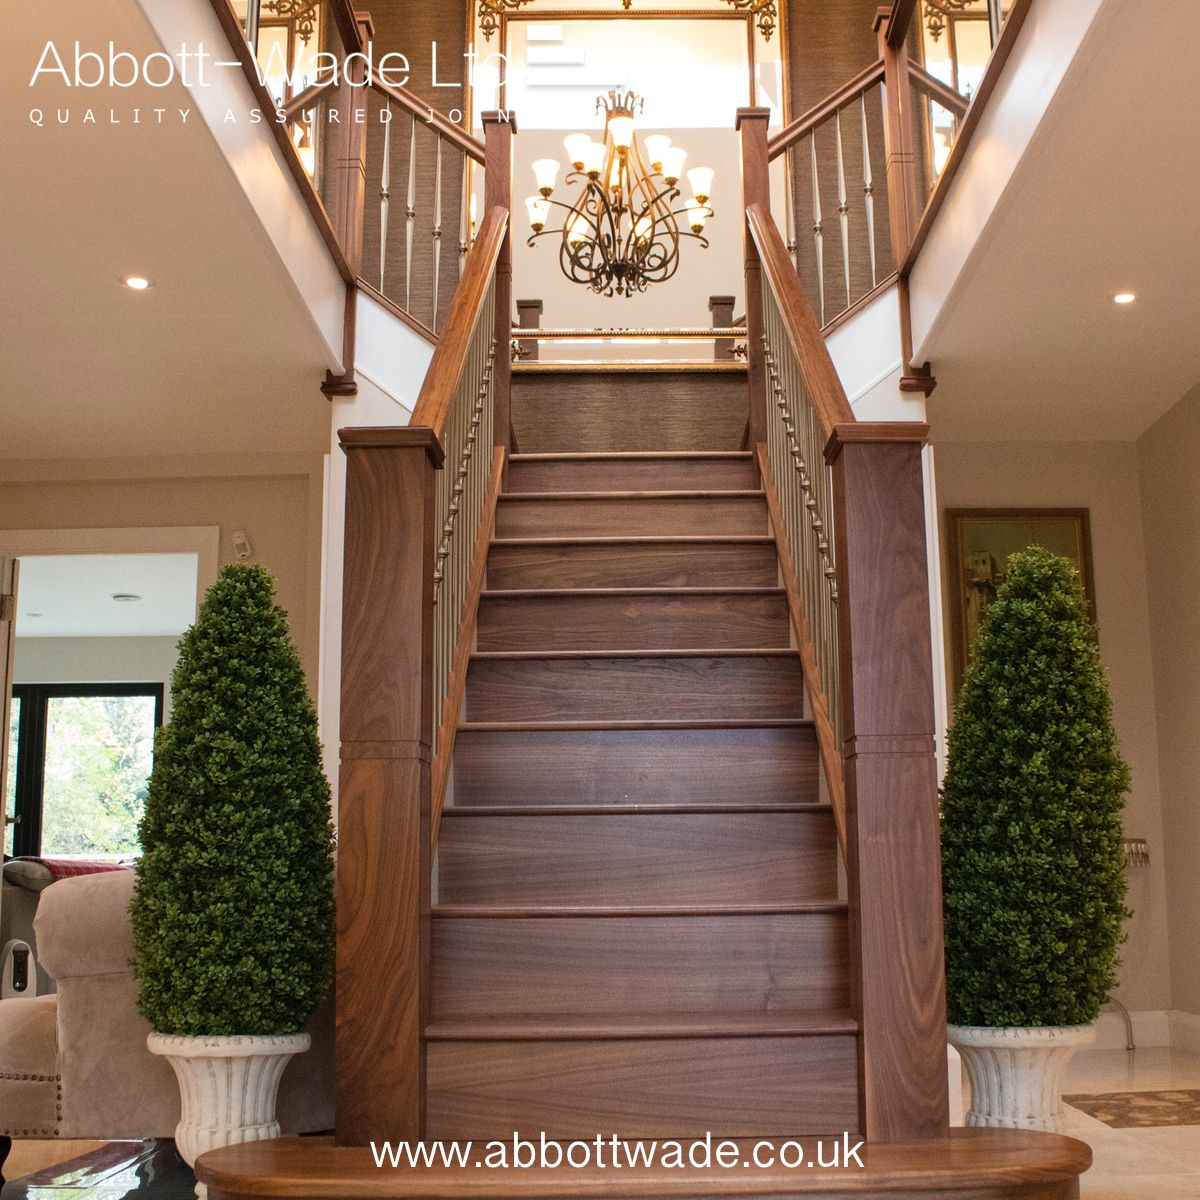 20 Excellent Traditional Staircases Design Ideas: A Stunning Feature Walnut Staircase With Stylish Lighting